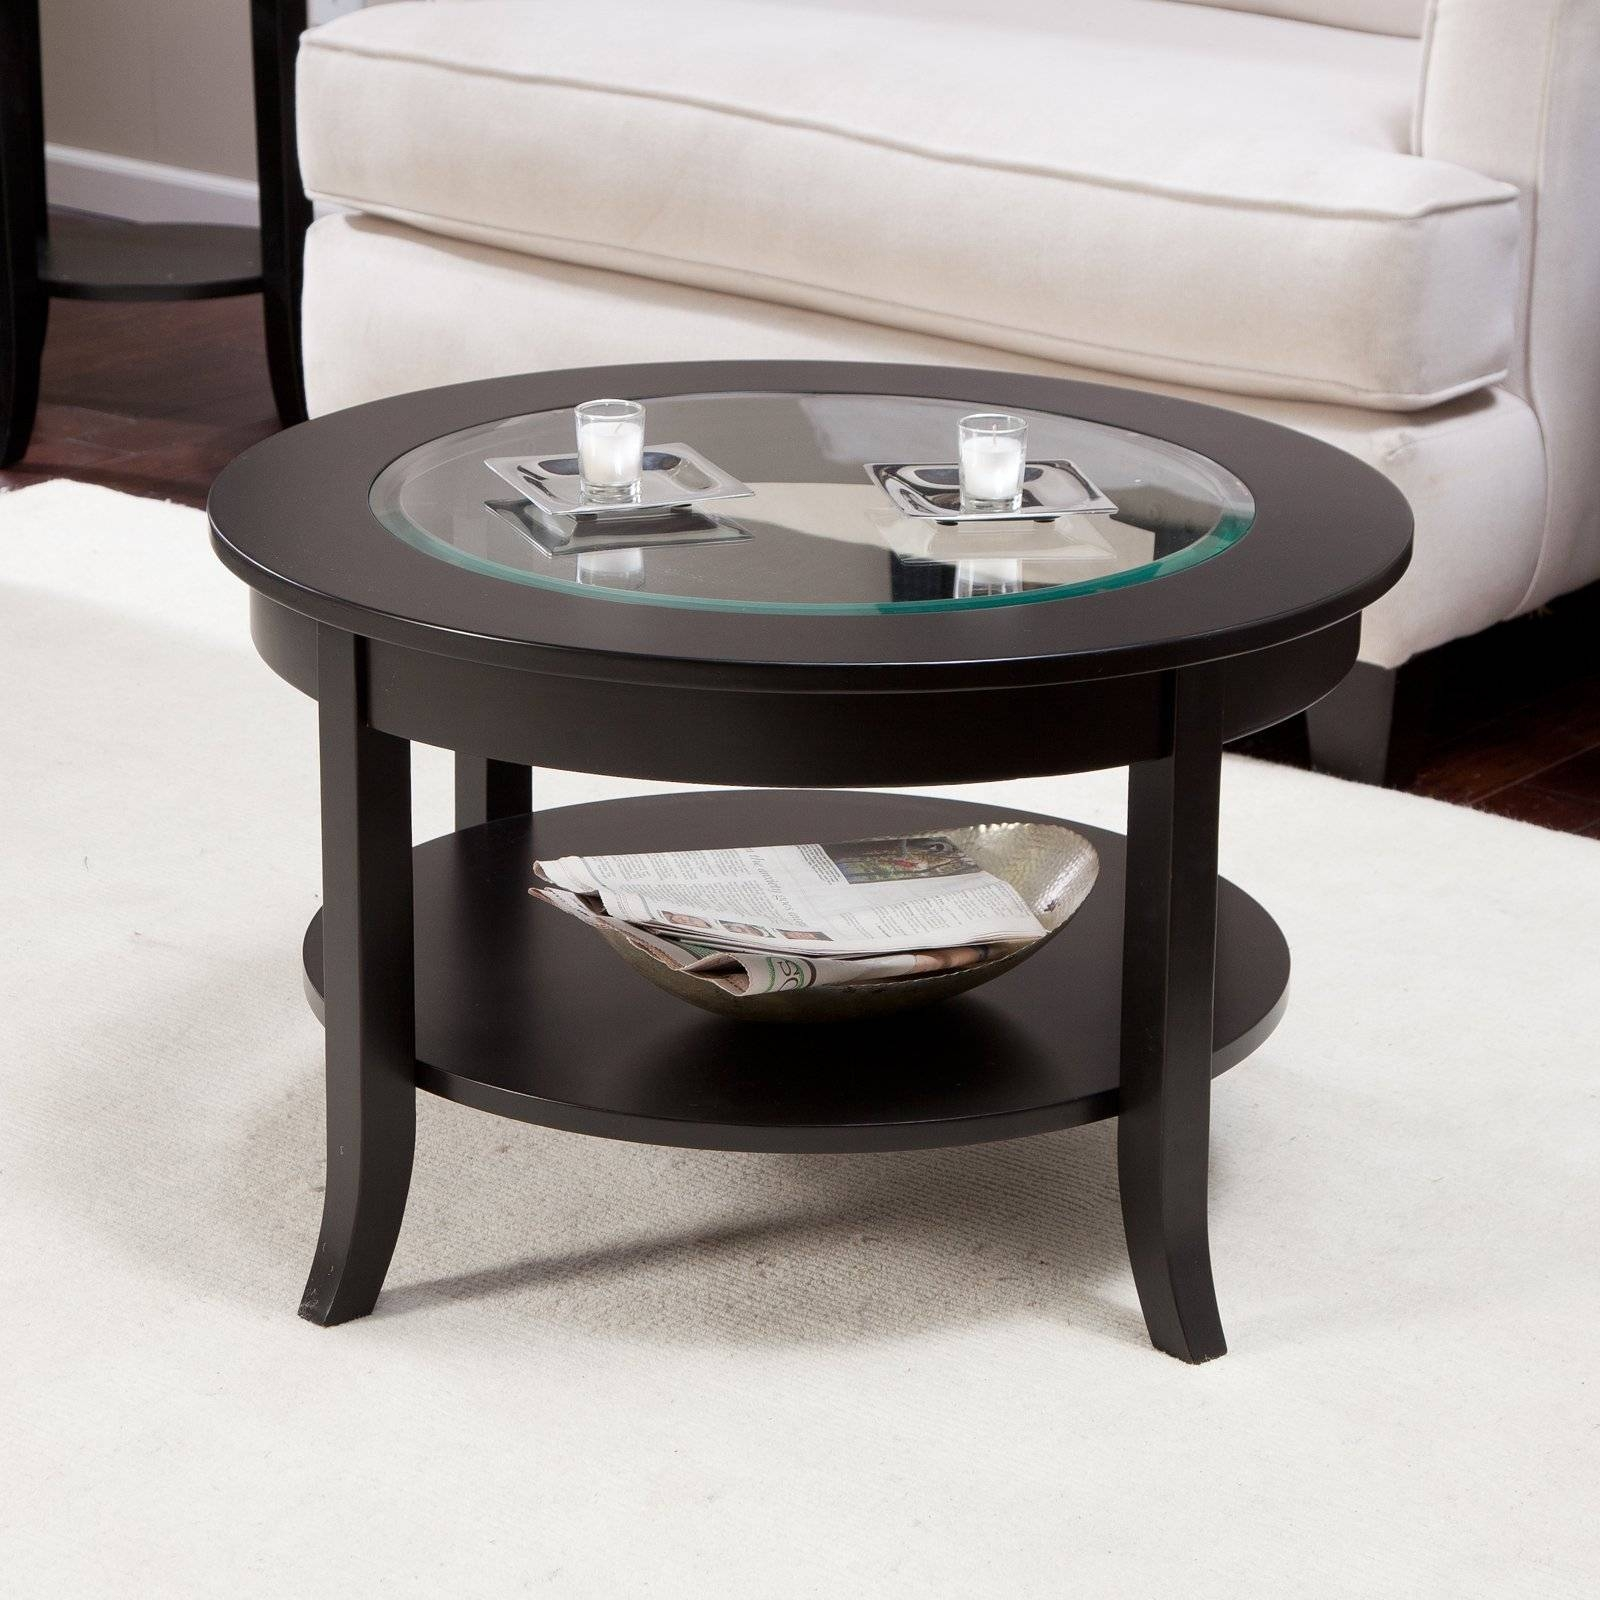 Shelby Glass Top Coffee Table With Quatrefoil Underlay - Coffee inside Oval Shaped Coffee Tables (Image 29 of 30)